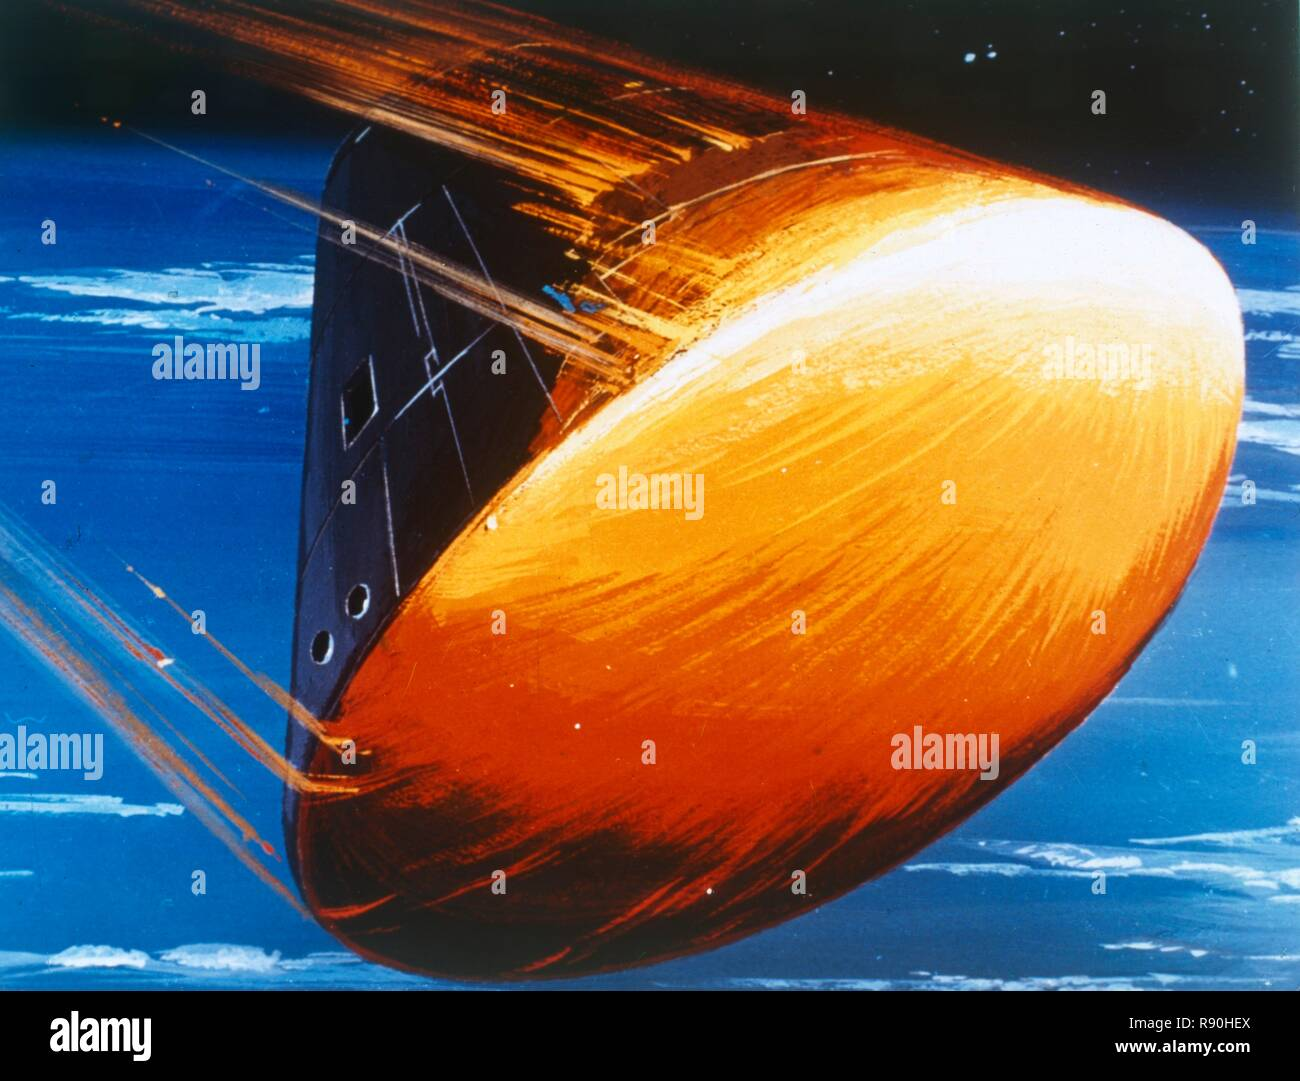 Artist's concept of Command Module re-entry in 5000° heat. The Apollo Command/Service Module was used for the Apollo program which landed astronauts on the Moon between 1969 and 1972. An ablative heat shield on the outside of the CM protected the capsule from the heat of re-entry (from space into Earth's atmosphere), which is sufficient to melt most metals. During re-entry, the heat shield charred and melted away, absorbing and carrying away the intense heat in the process. - Stock Image